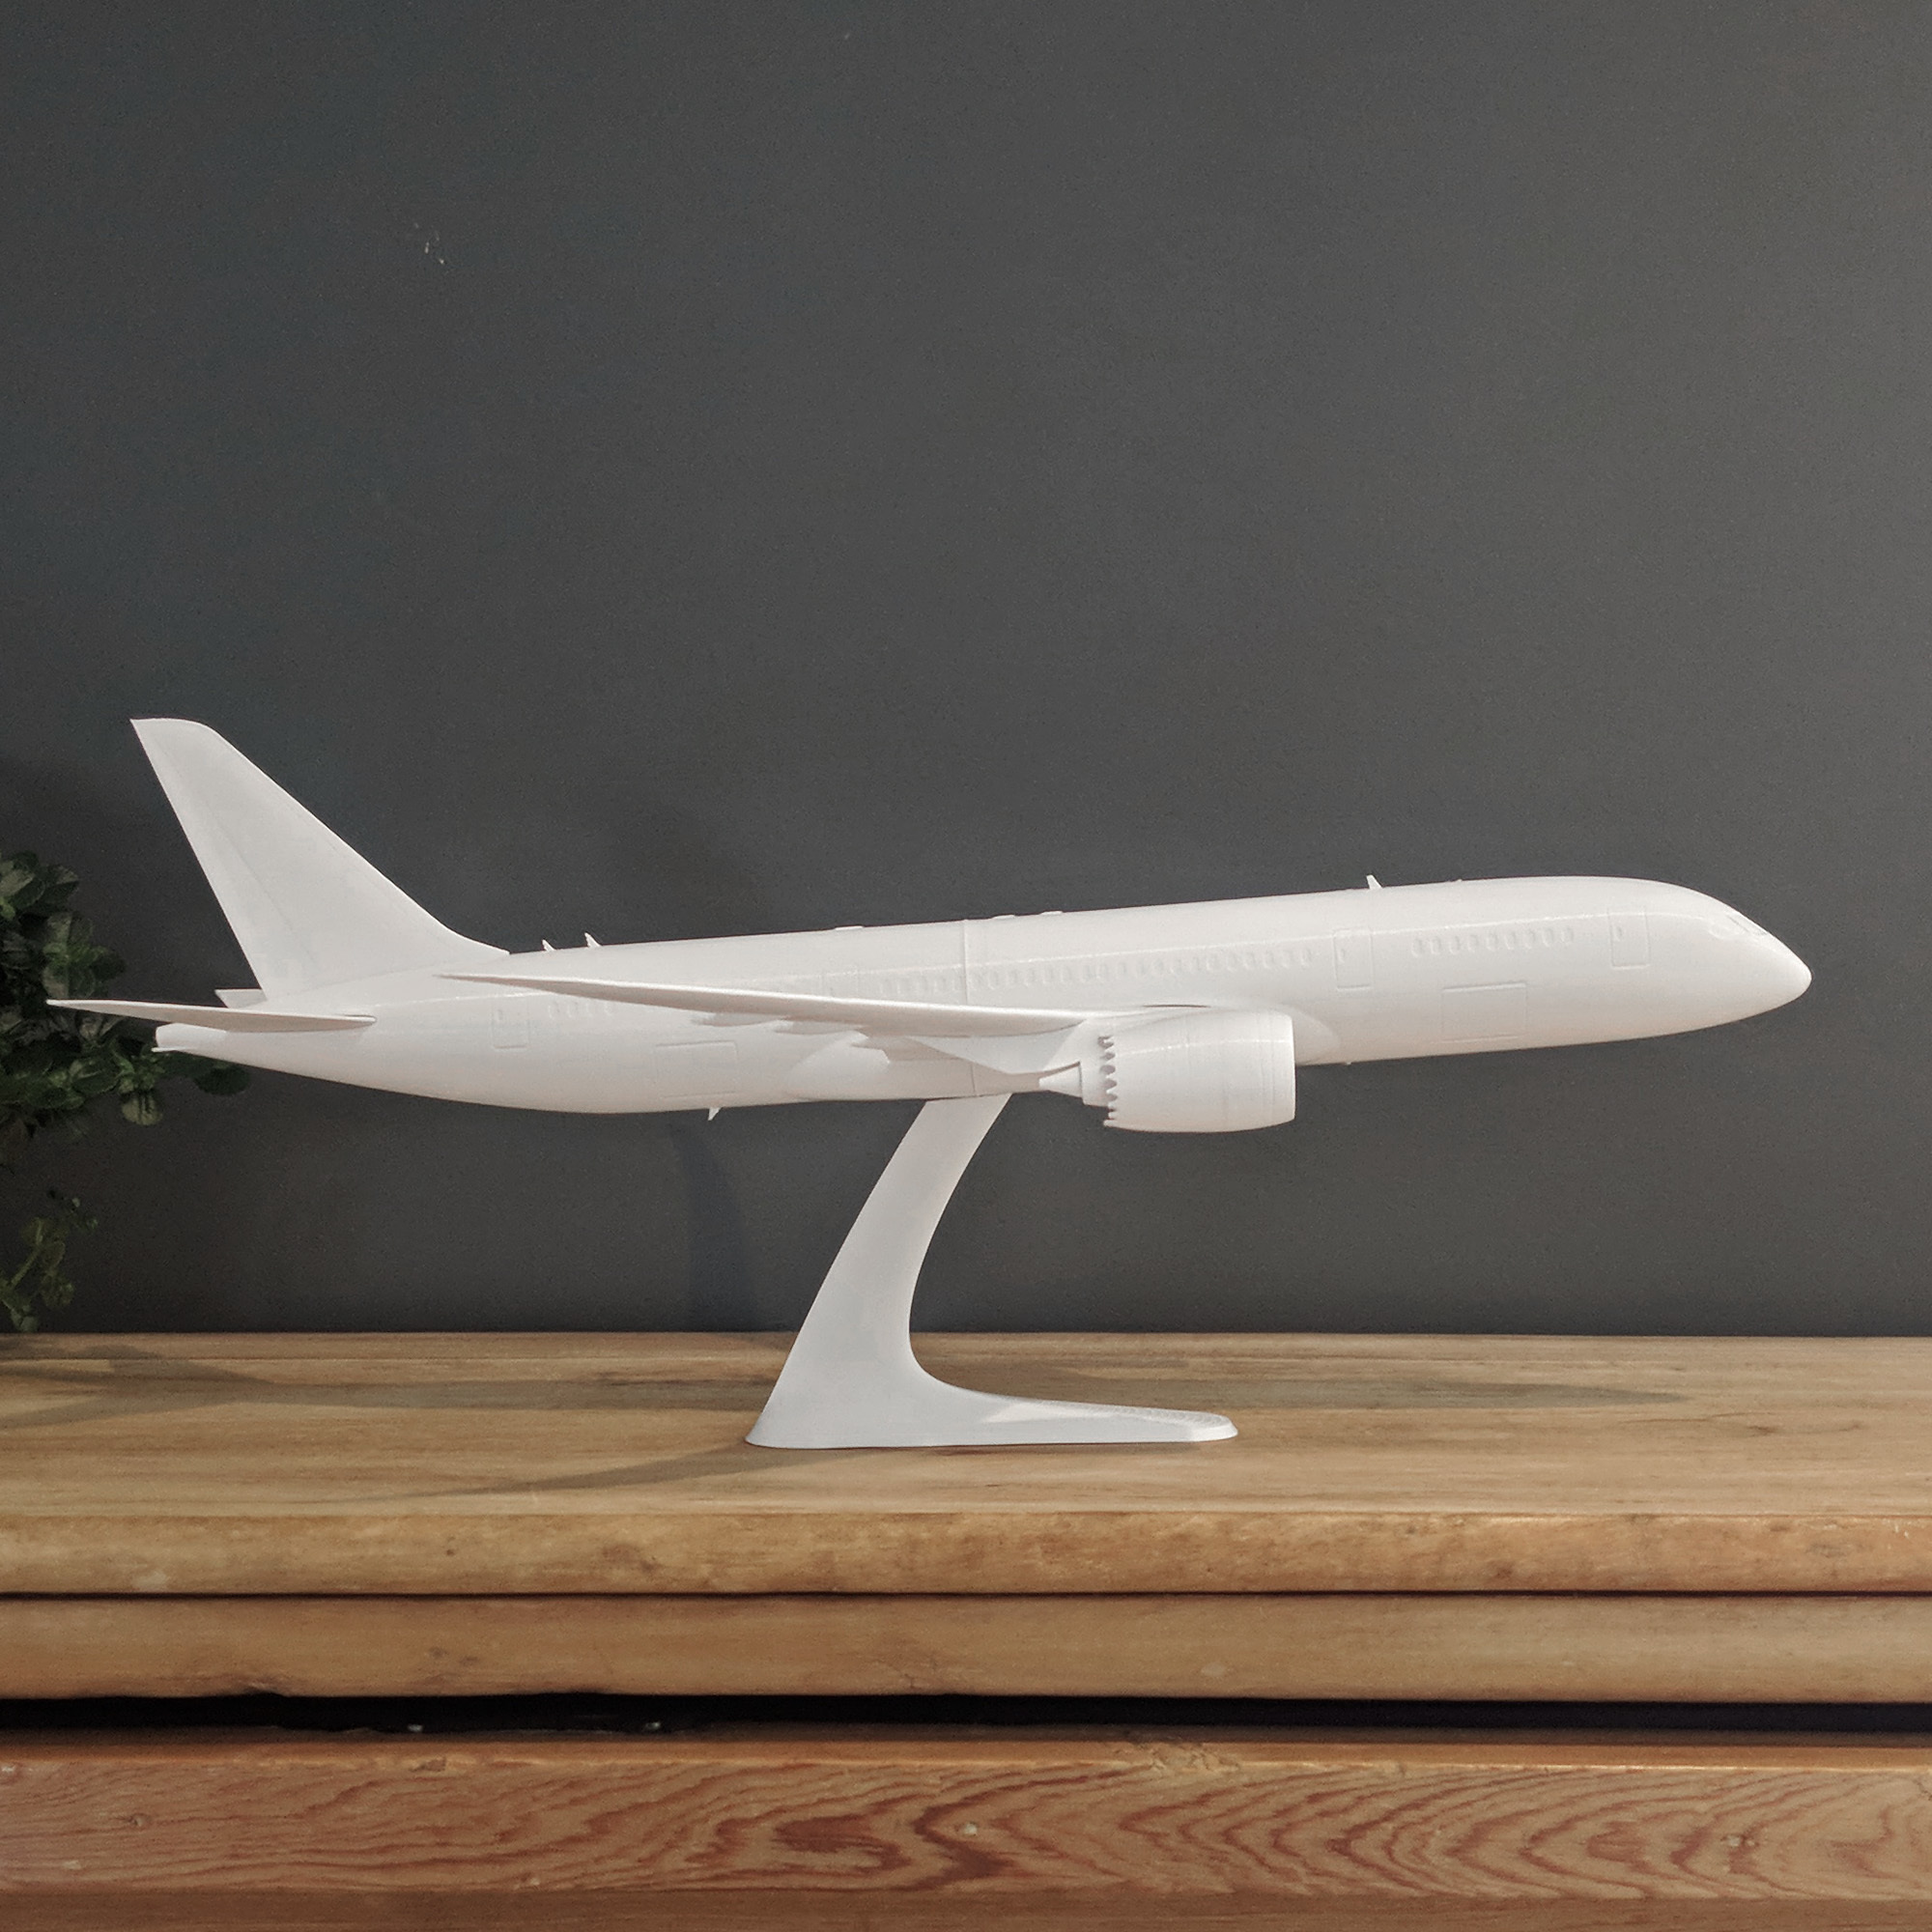 19.jpg Download STL file Boeing 787-8 Dreamliner - 1:144 • 3D printable model, CLERX